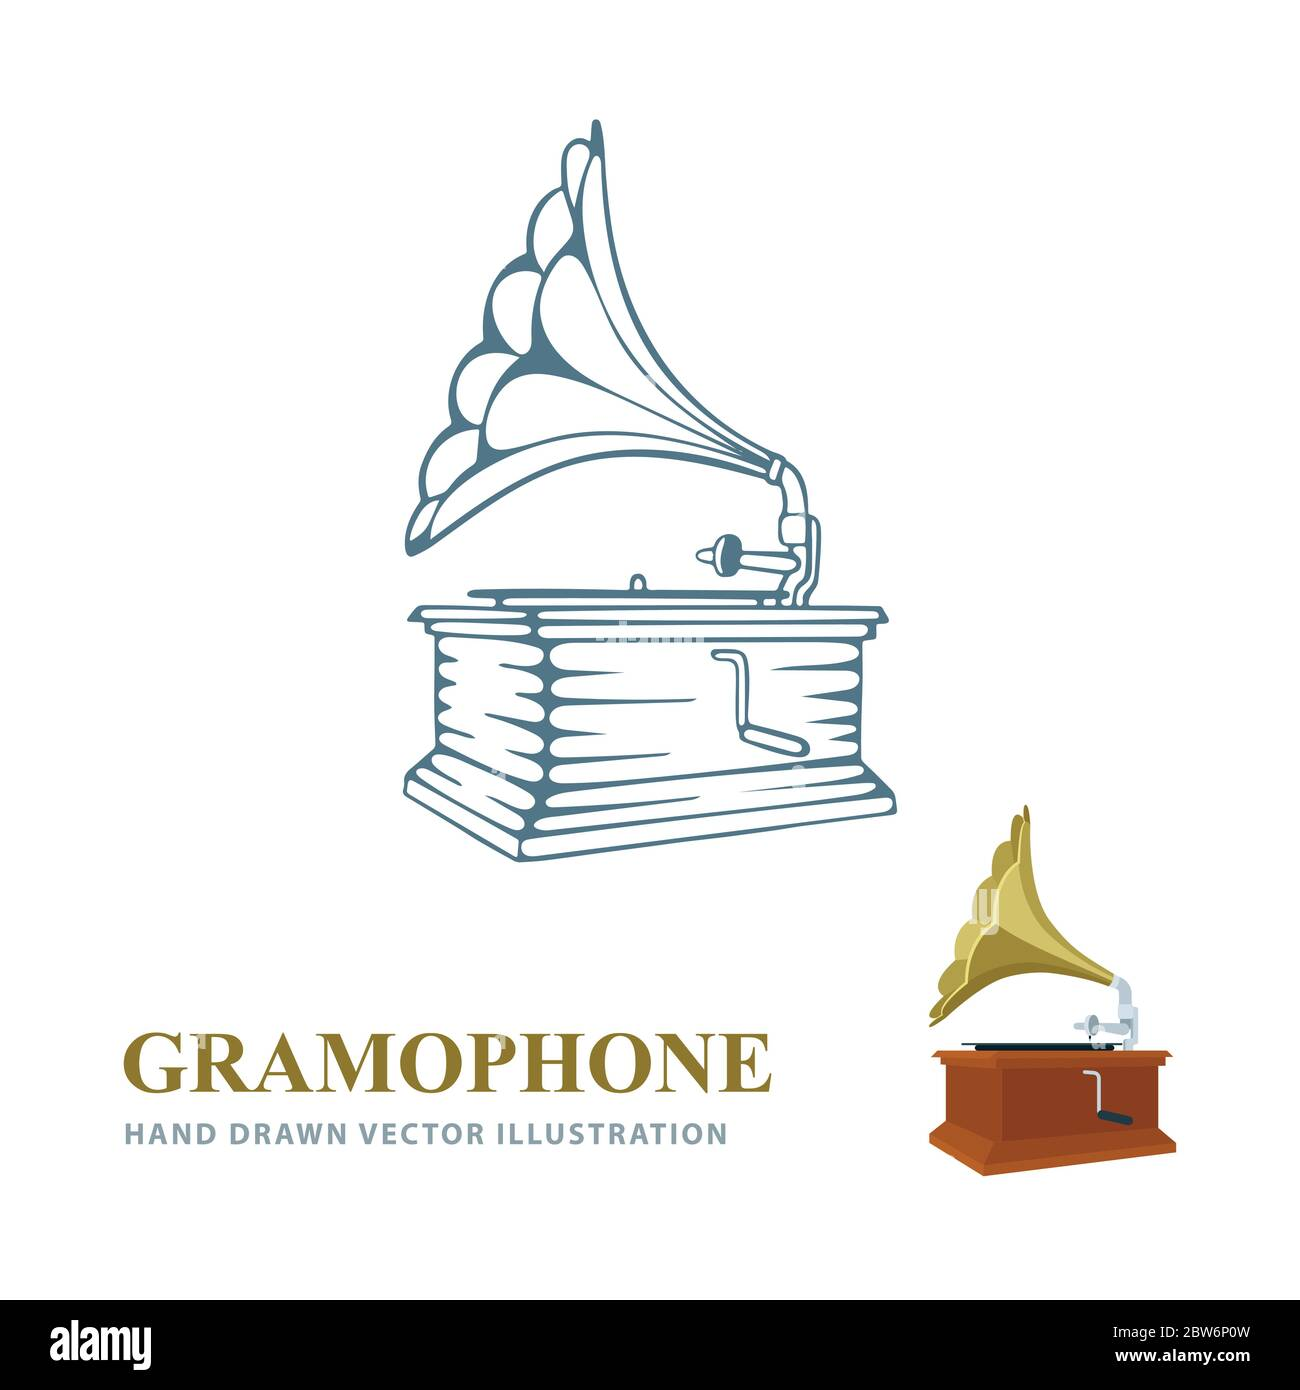 gramophone gramophone hand drawn and realistic vector illustrations old gramophone side view sketch drawing retro music concept part of set stock vector image art alamy alamy